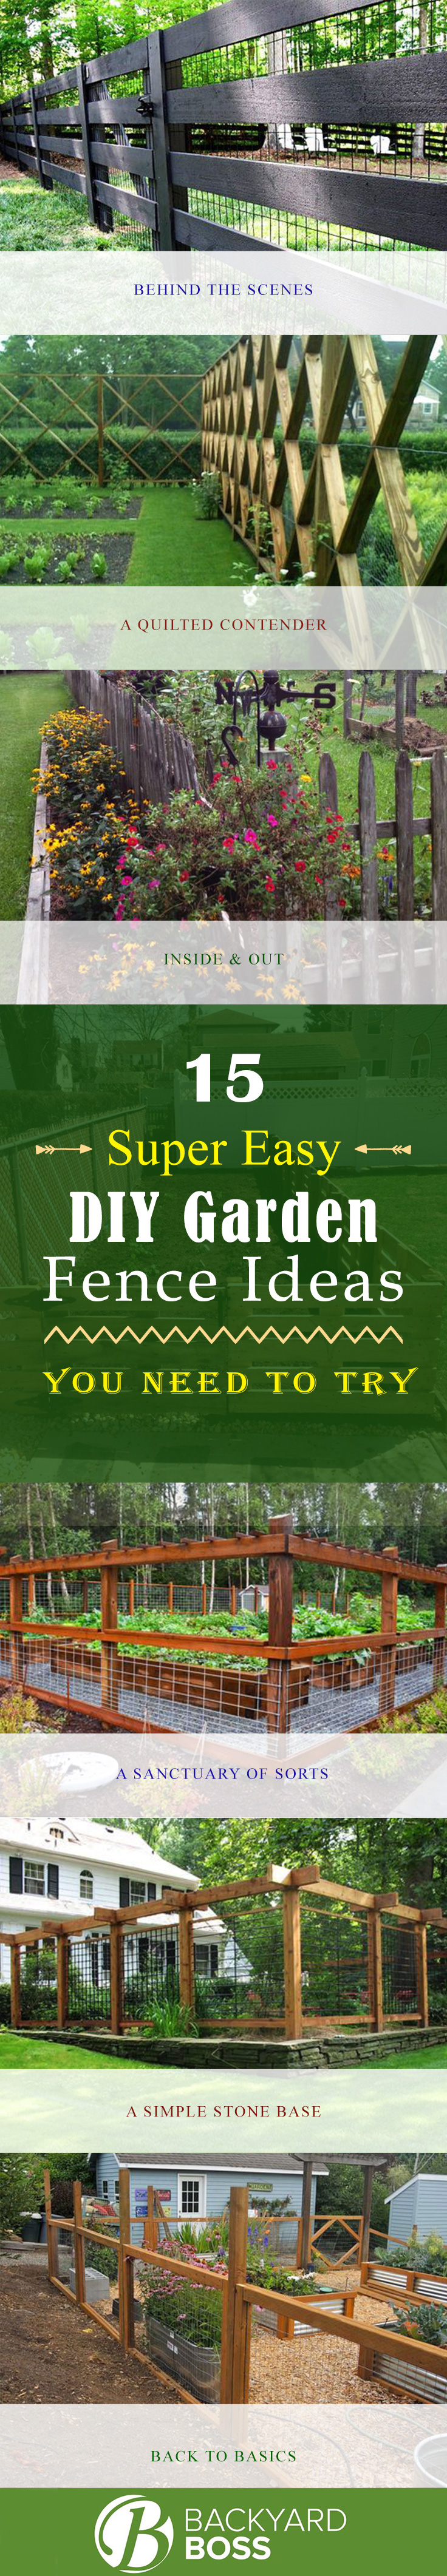 Simple Garden Fence Ideas a simple garden fence Related Posts